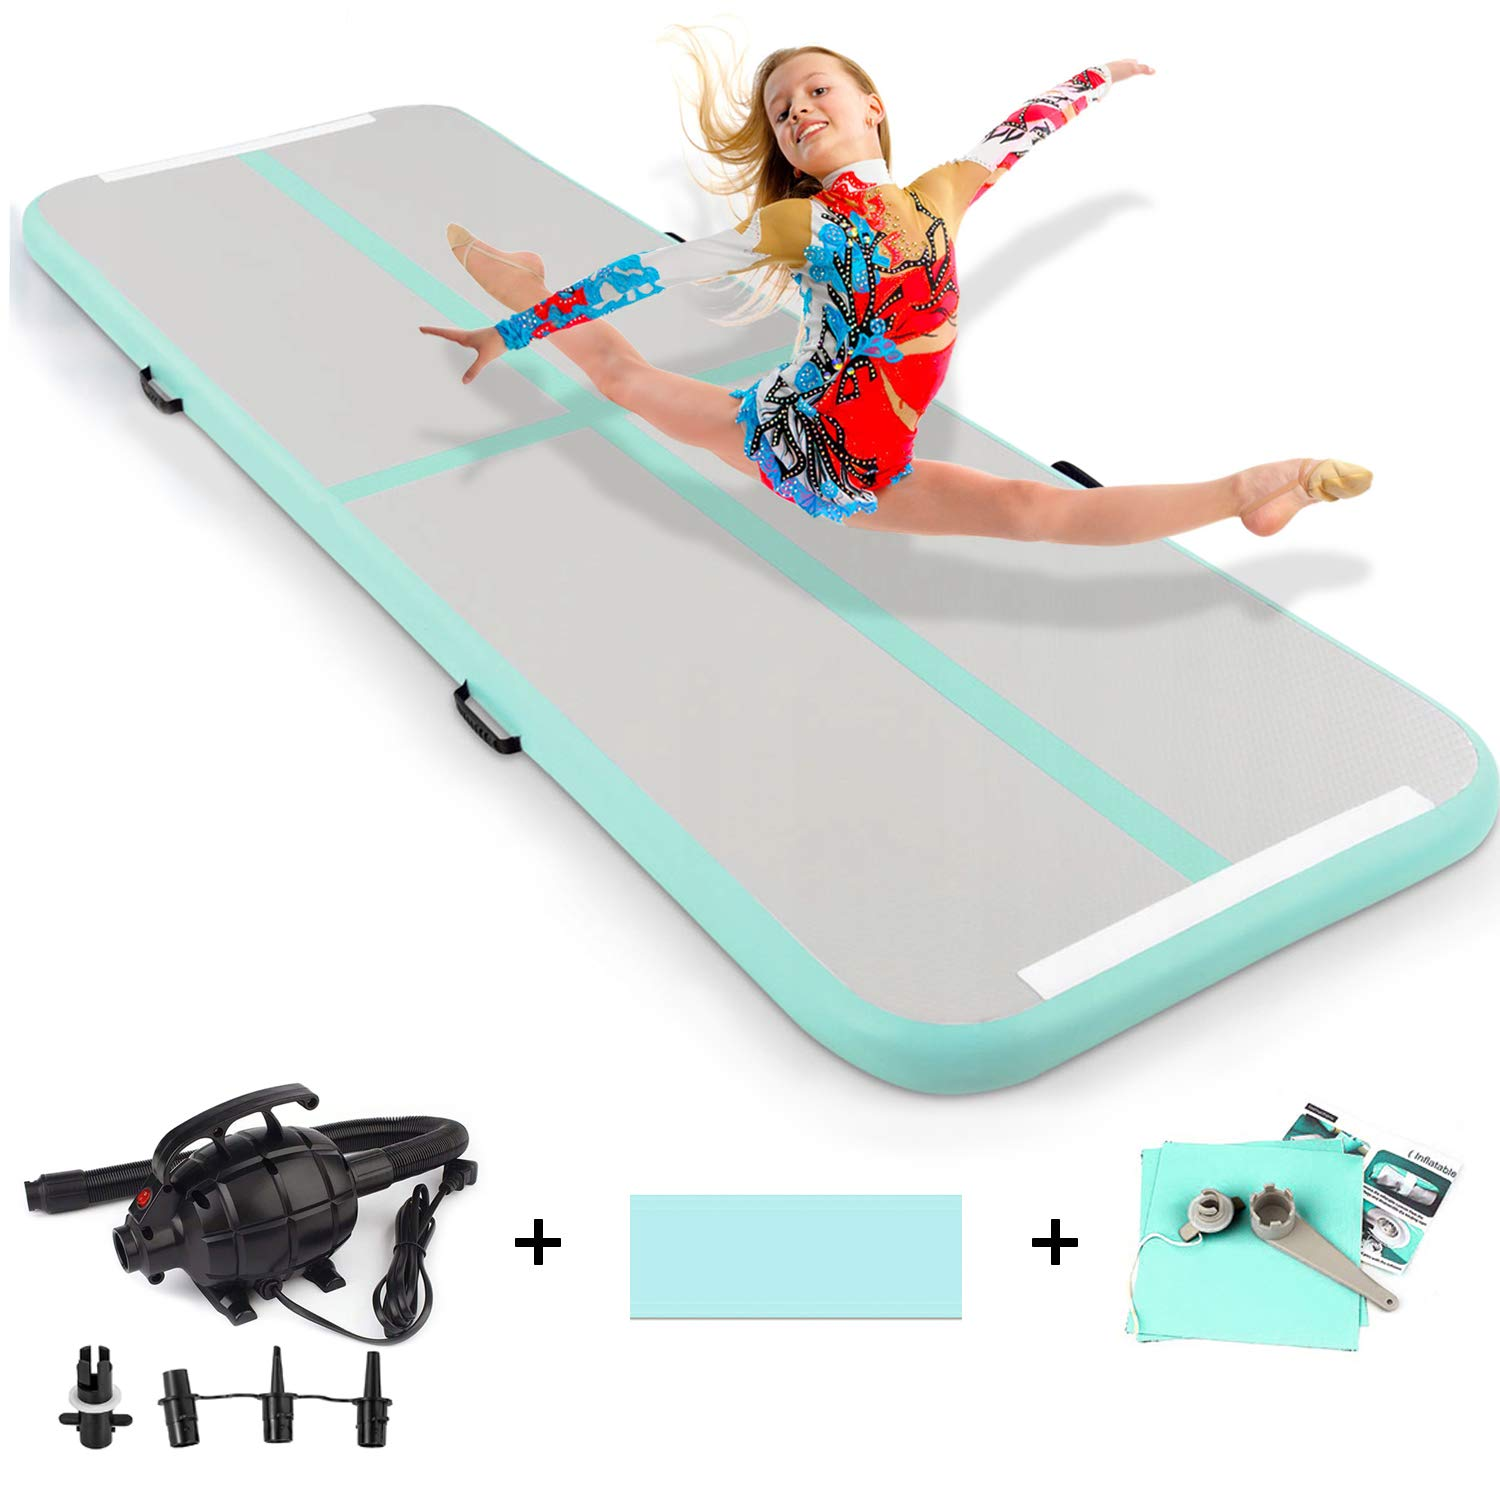 Gymnastic Mat Inflatable Air Track Tumbling Mat with Pump for Gym Home Use/Training/Cheerleading/Beach